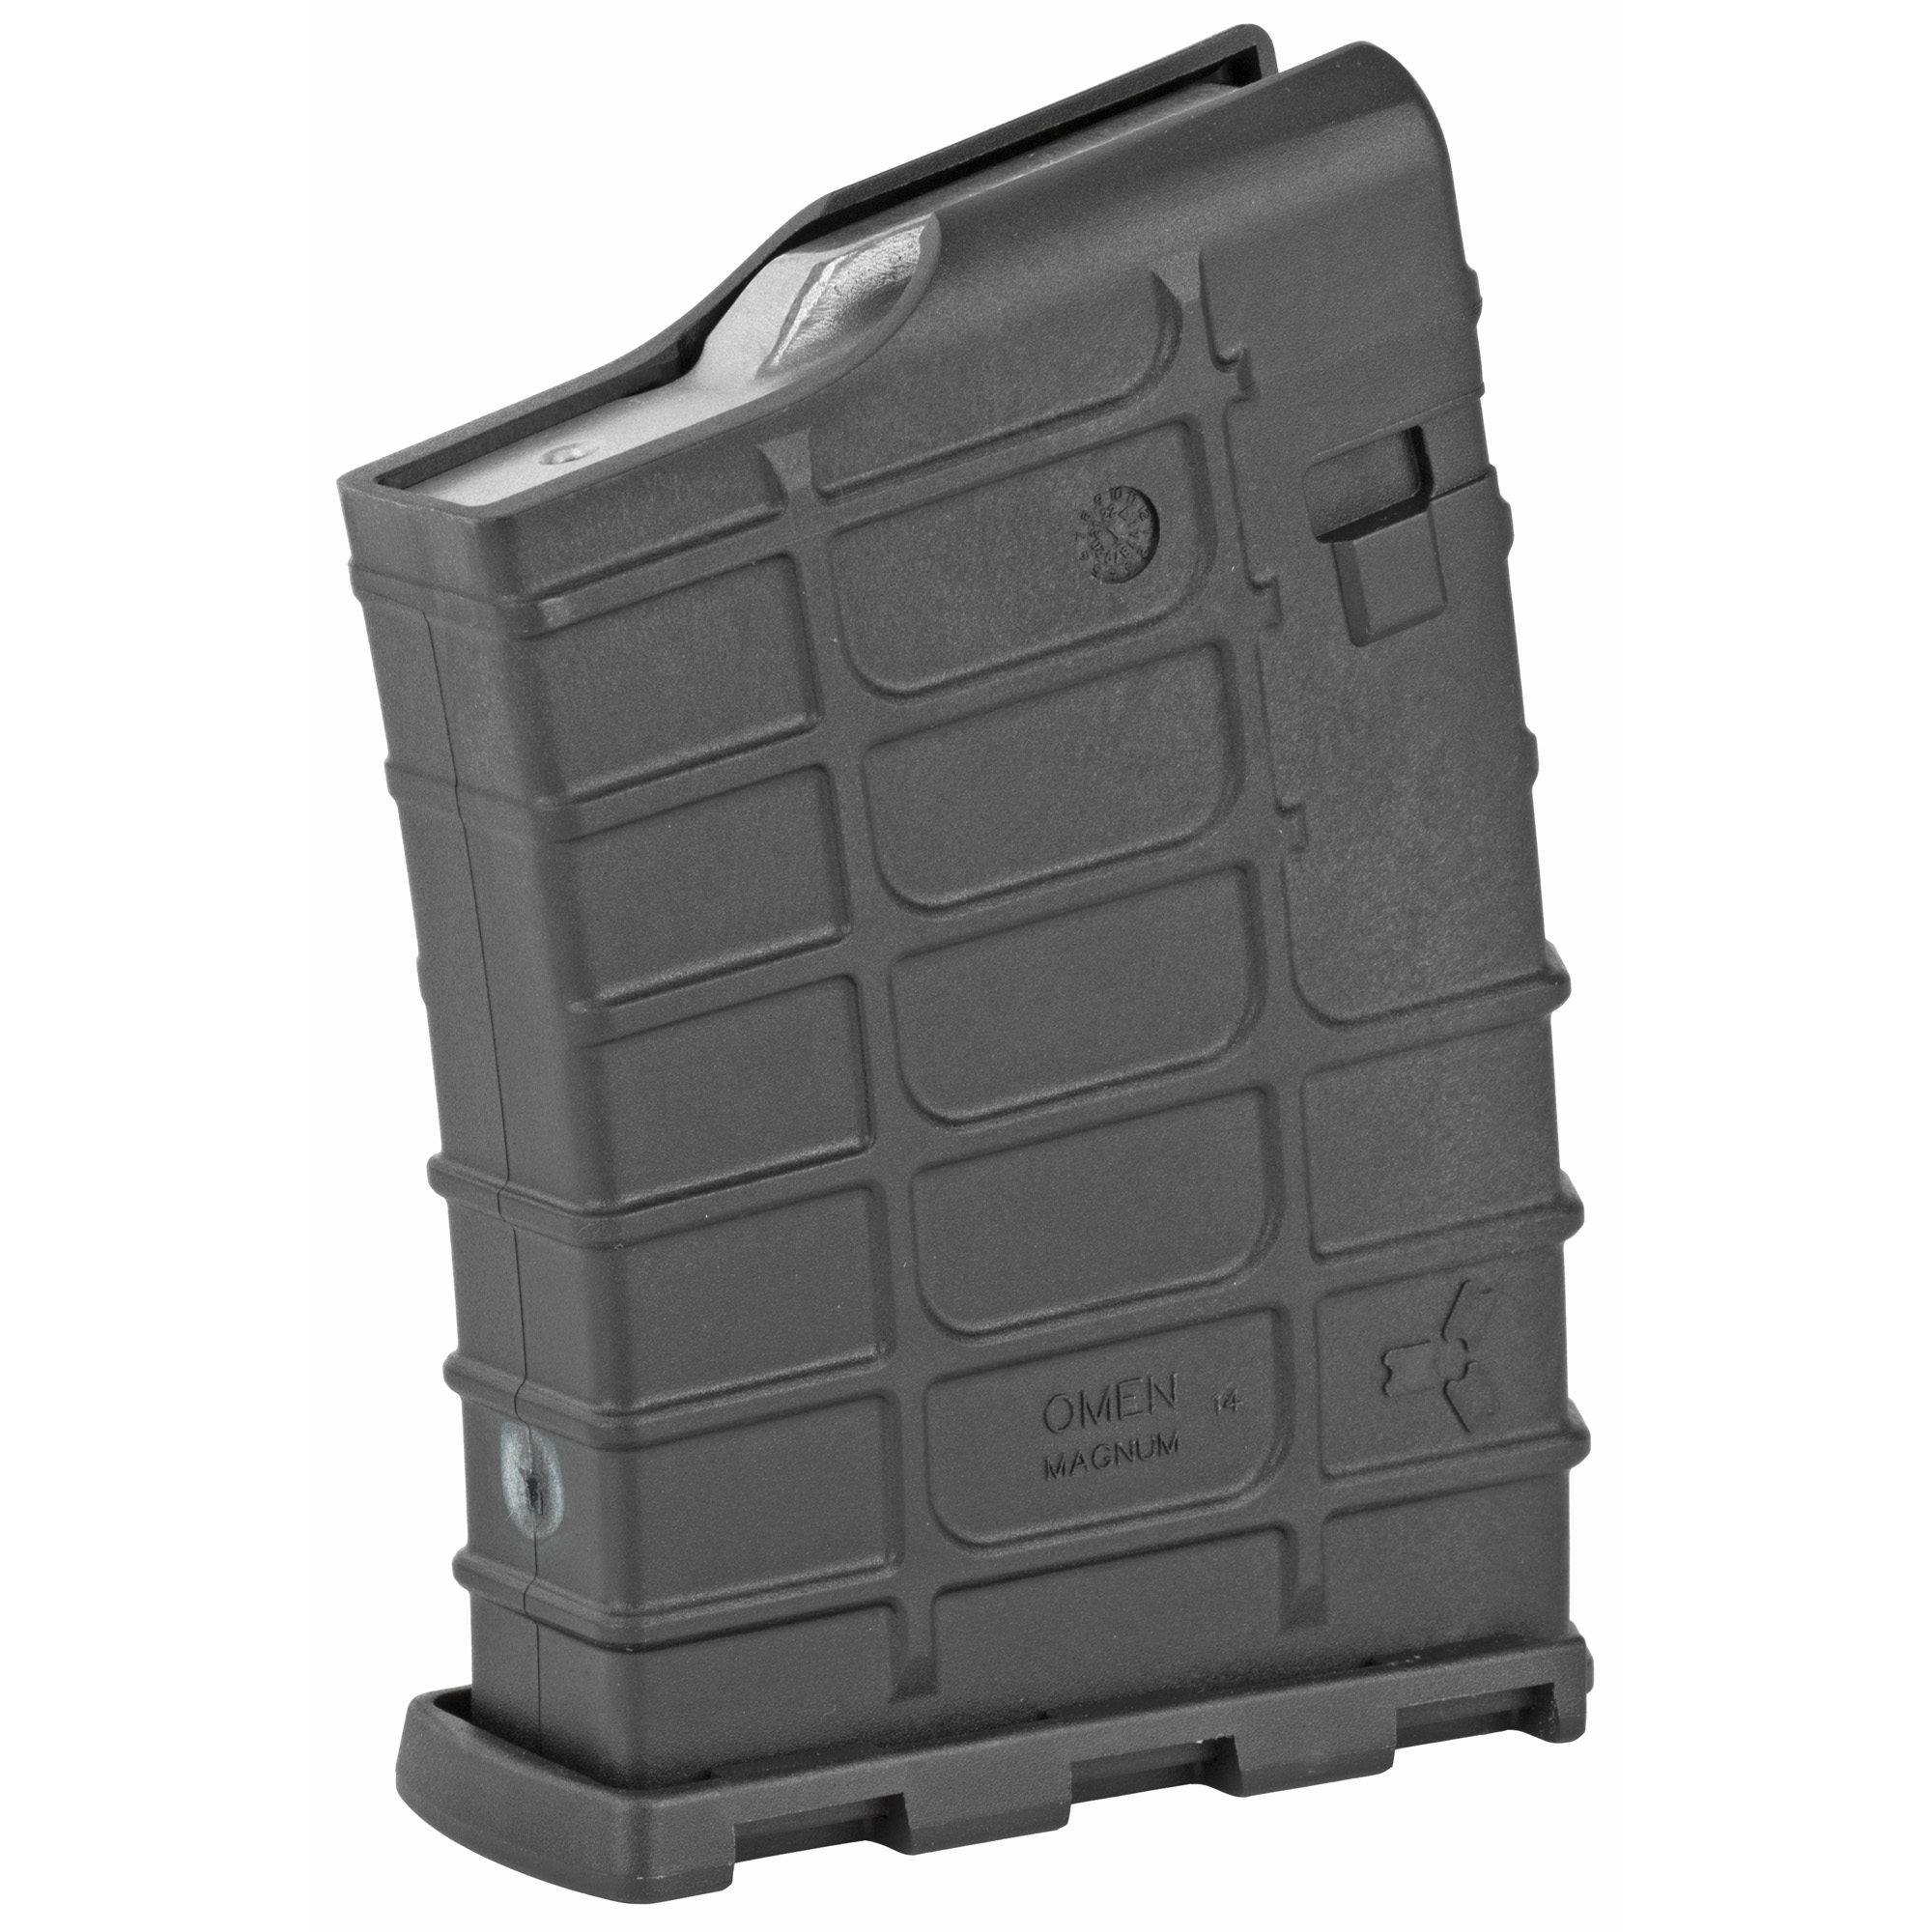 """This rugged polymer magazine was engineered from the ground up based on belted magnums. The magazine features an anti-tilt follower"""" 14 round capacity and stainless steel spring. The magazine disassembles easily for cleaning. Weighs 7 ounces unloaded. Cartridges that can be used: .300 Winchester Magnum"""" 7mm Remington Magnum and .338 Winchester Magnum. Magazine can accommodate a cartridge up to 3.50"""" overall cartridge length."""